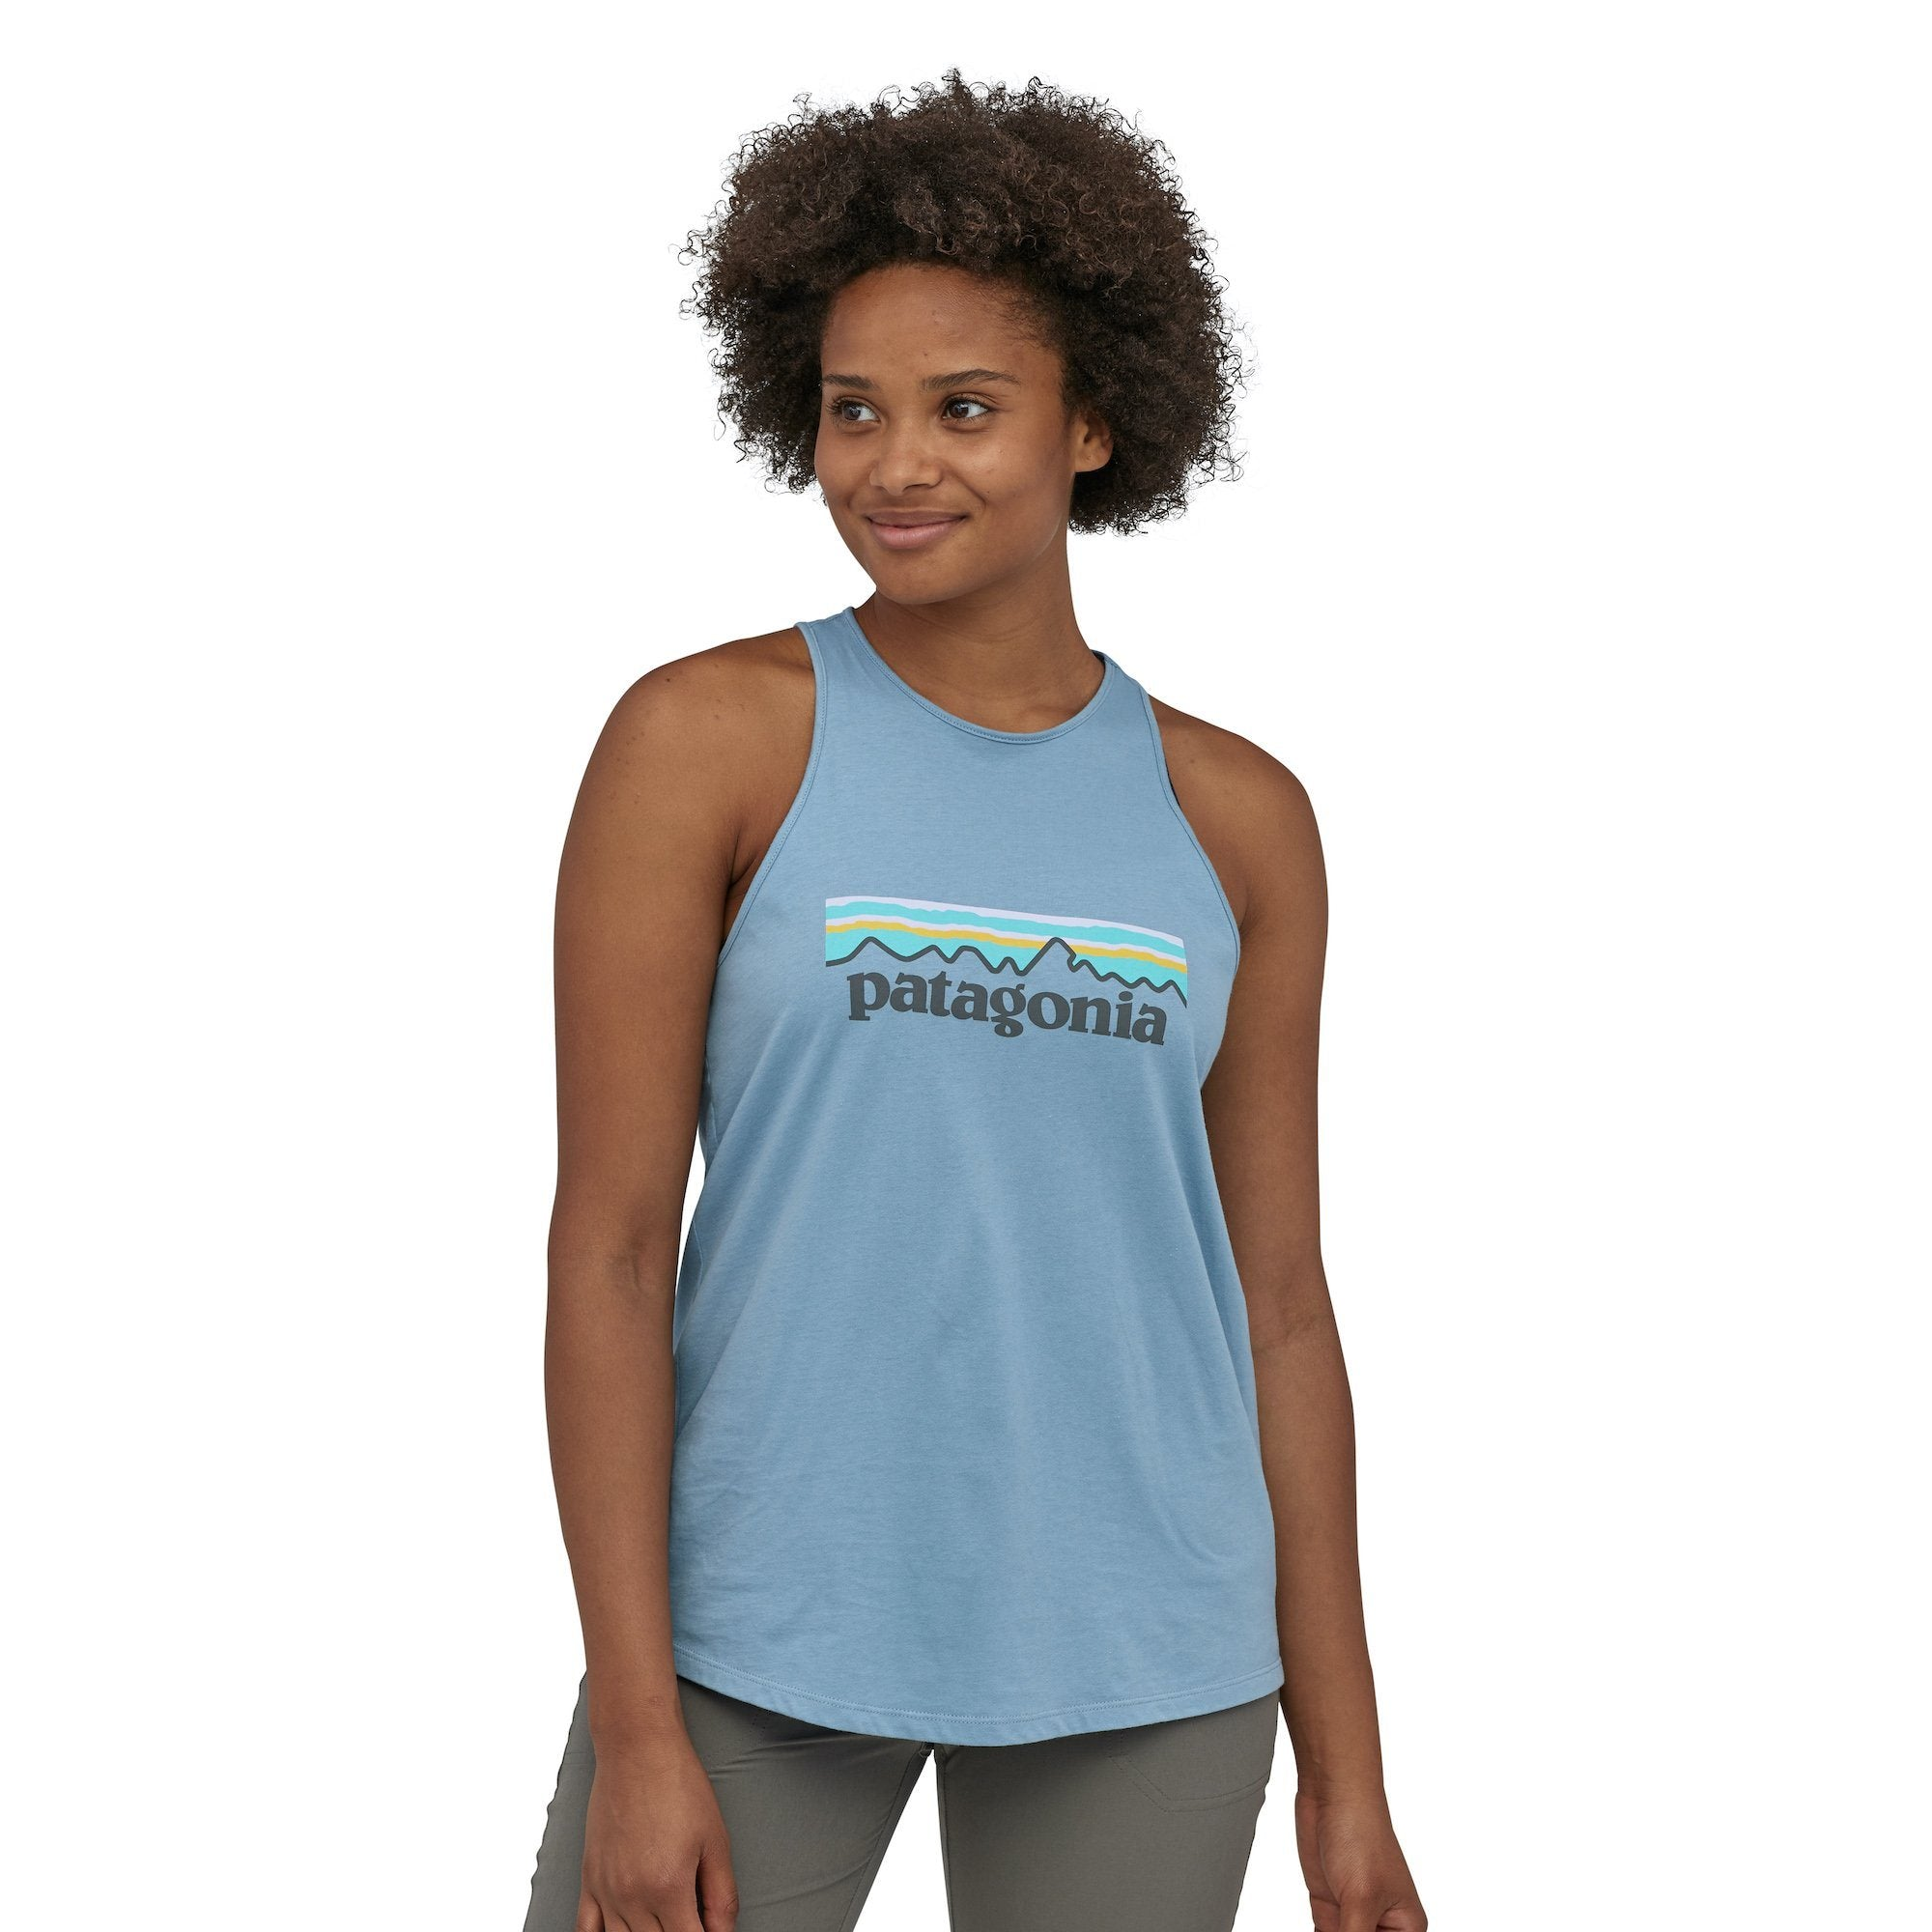 Patagonia - W's Pastel P-6 Logo Organic Cotton High Neck Tank Top - Weekendbee - sustainable sportswear